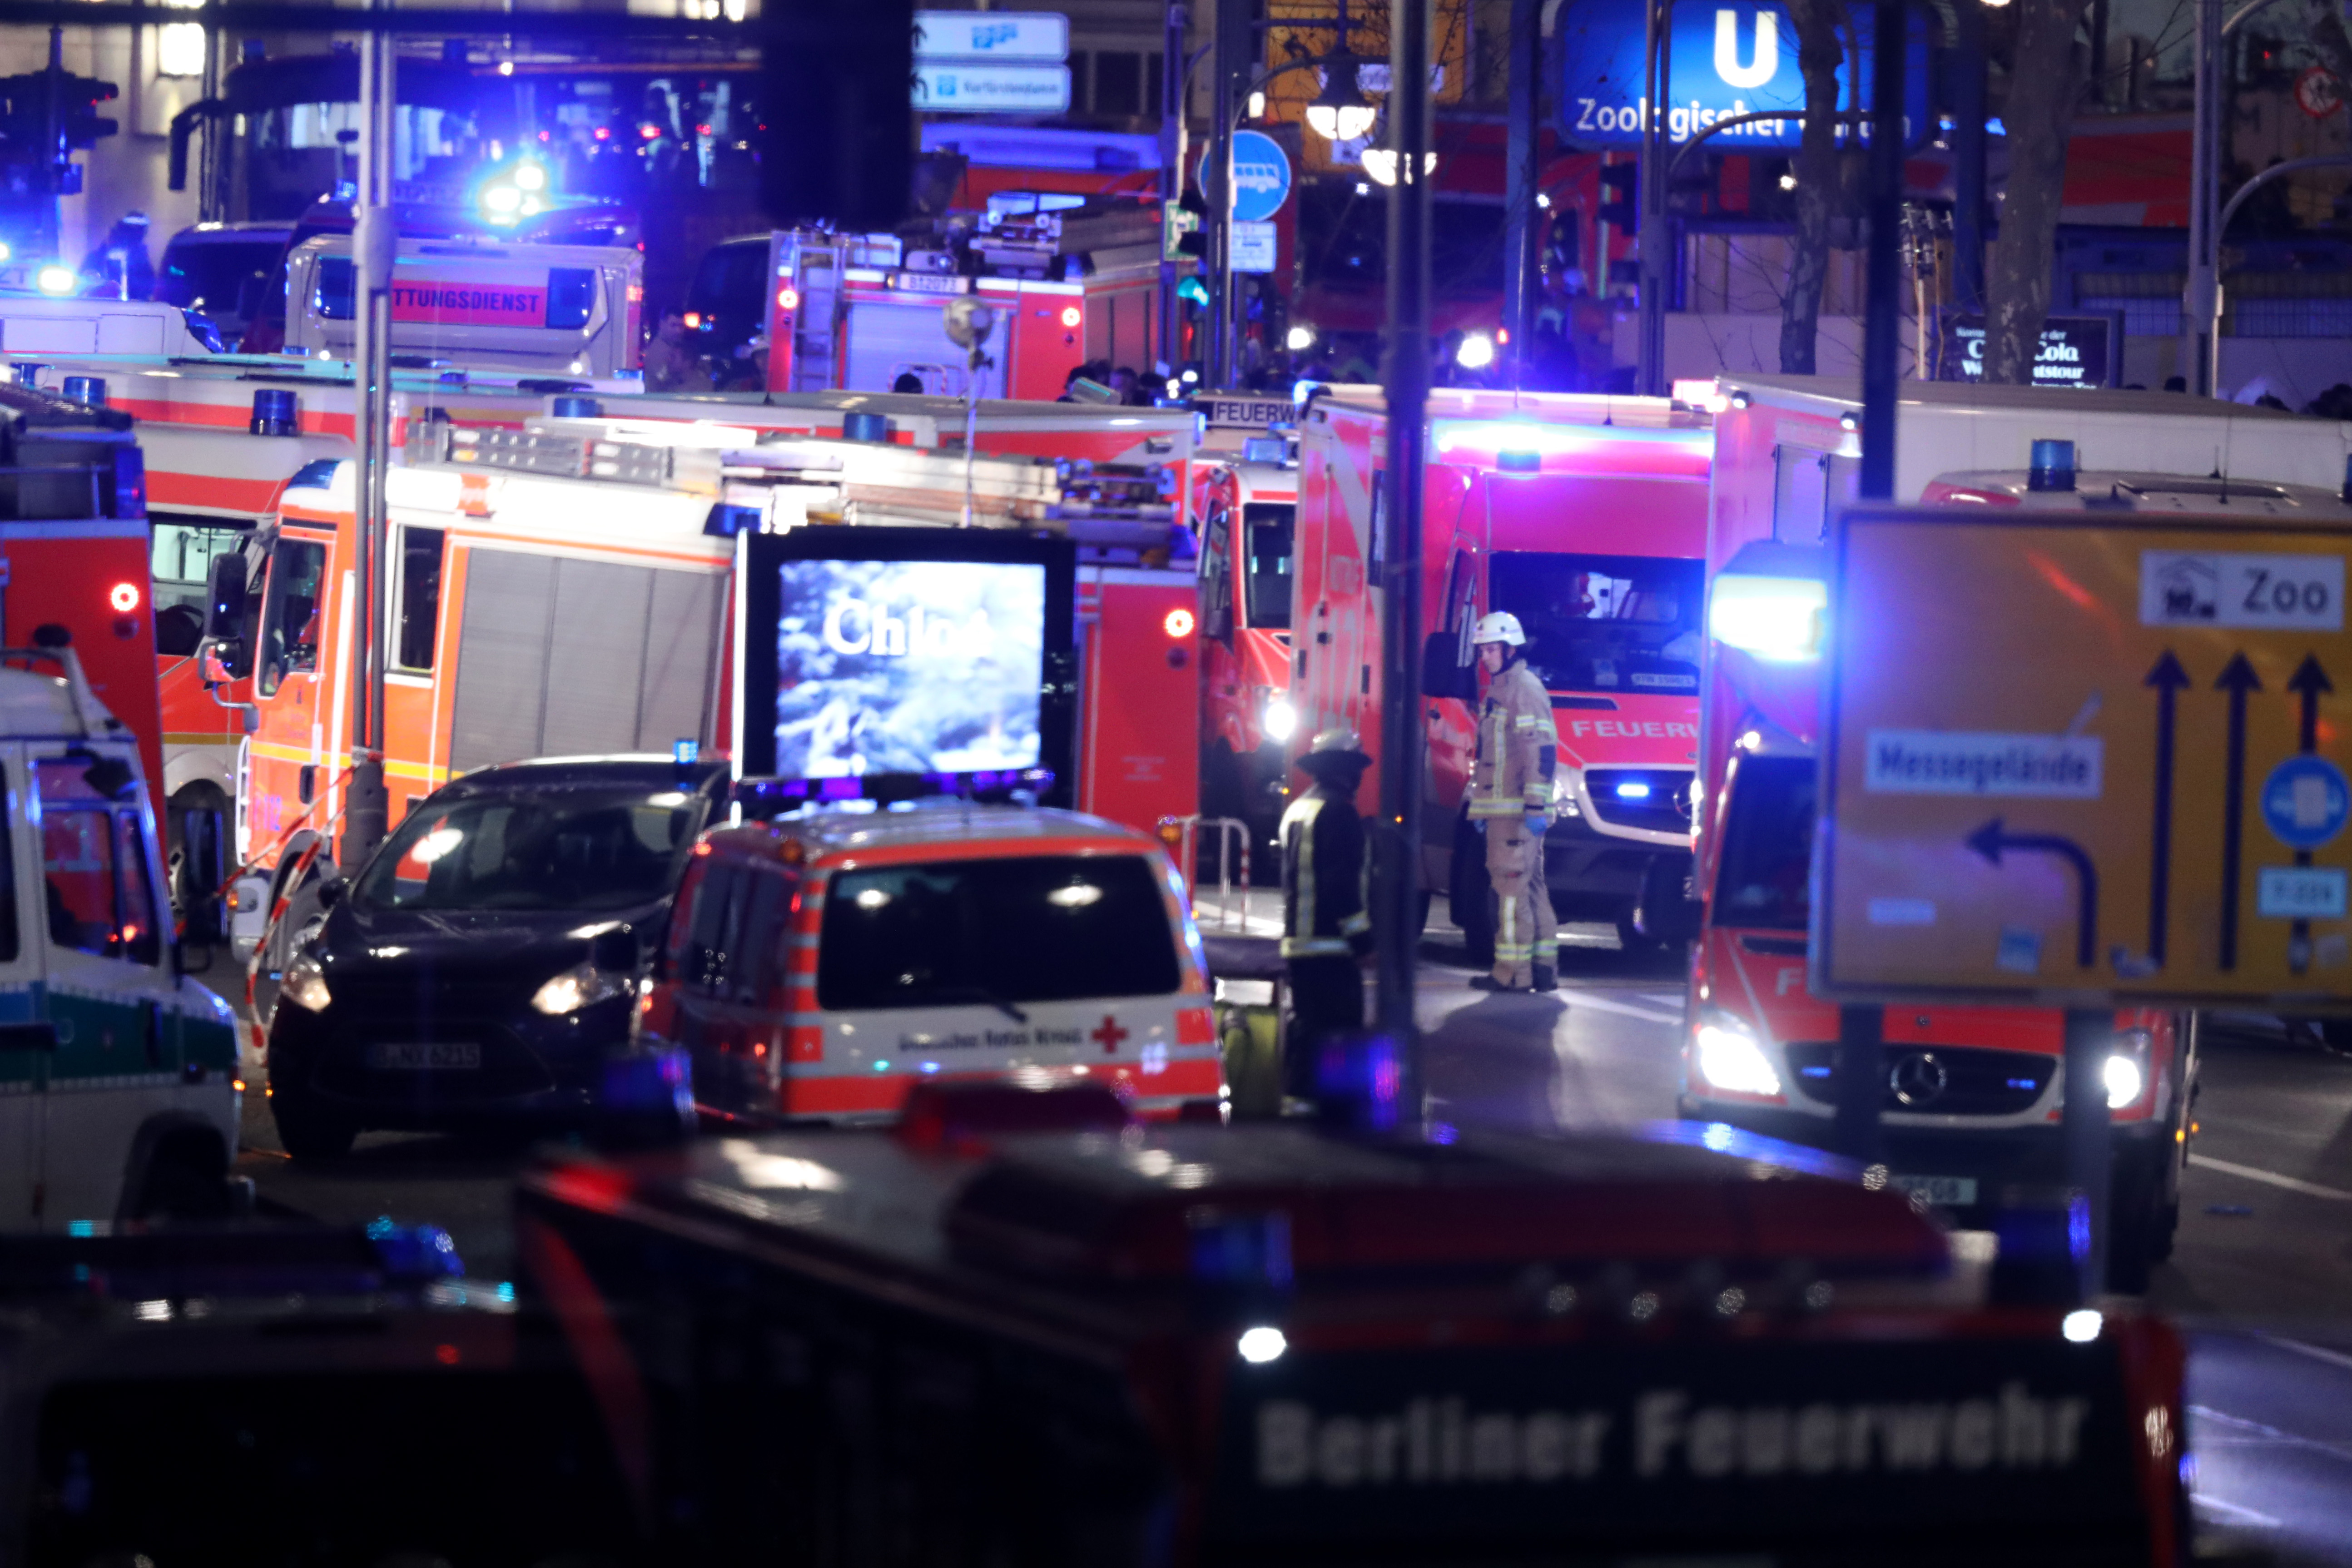 Ambulances line the streets as rescue workers tend to the area after a lorry truck plowed through a Christmas market on December 19, 2016 in Berlin, Germany.